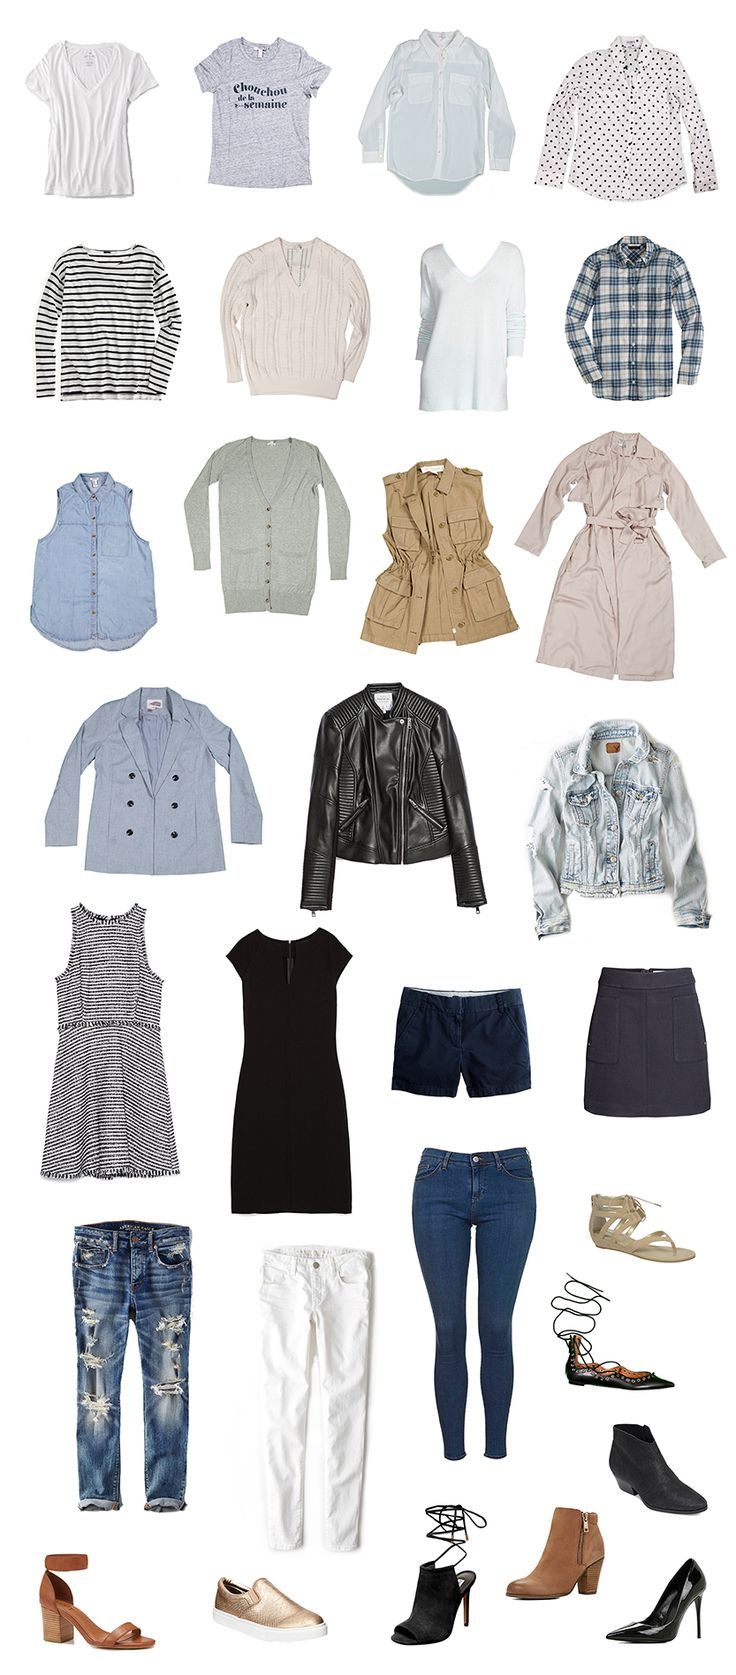 With just these 27 items, you can create your very own capsule wardrobe. The best part is it makes getting dressed super easy. Click through for outfit ideas for all occasions.